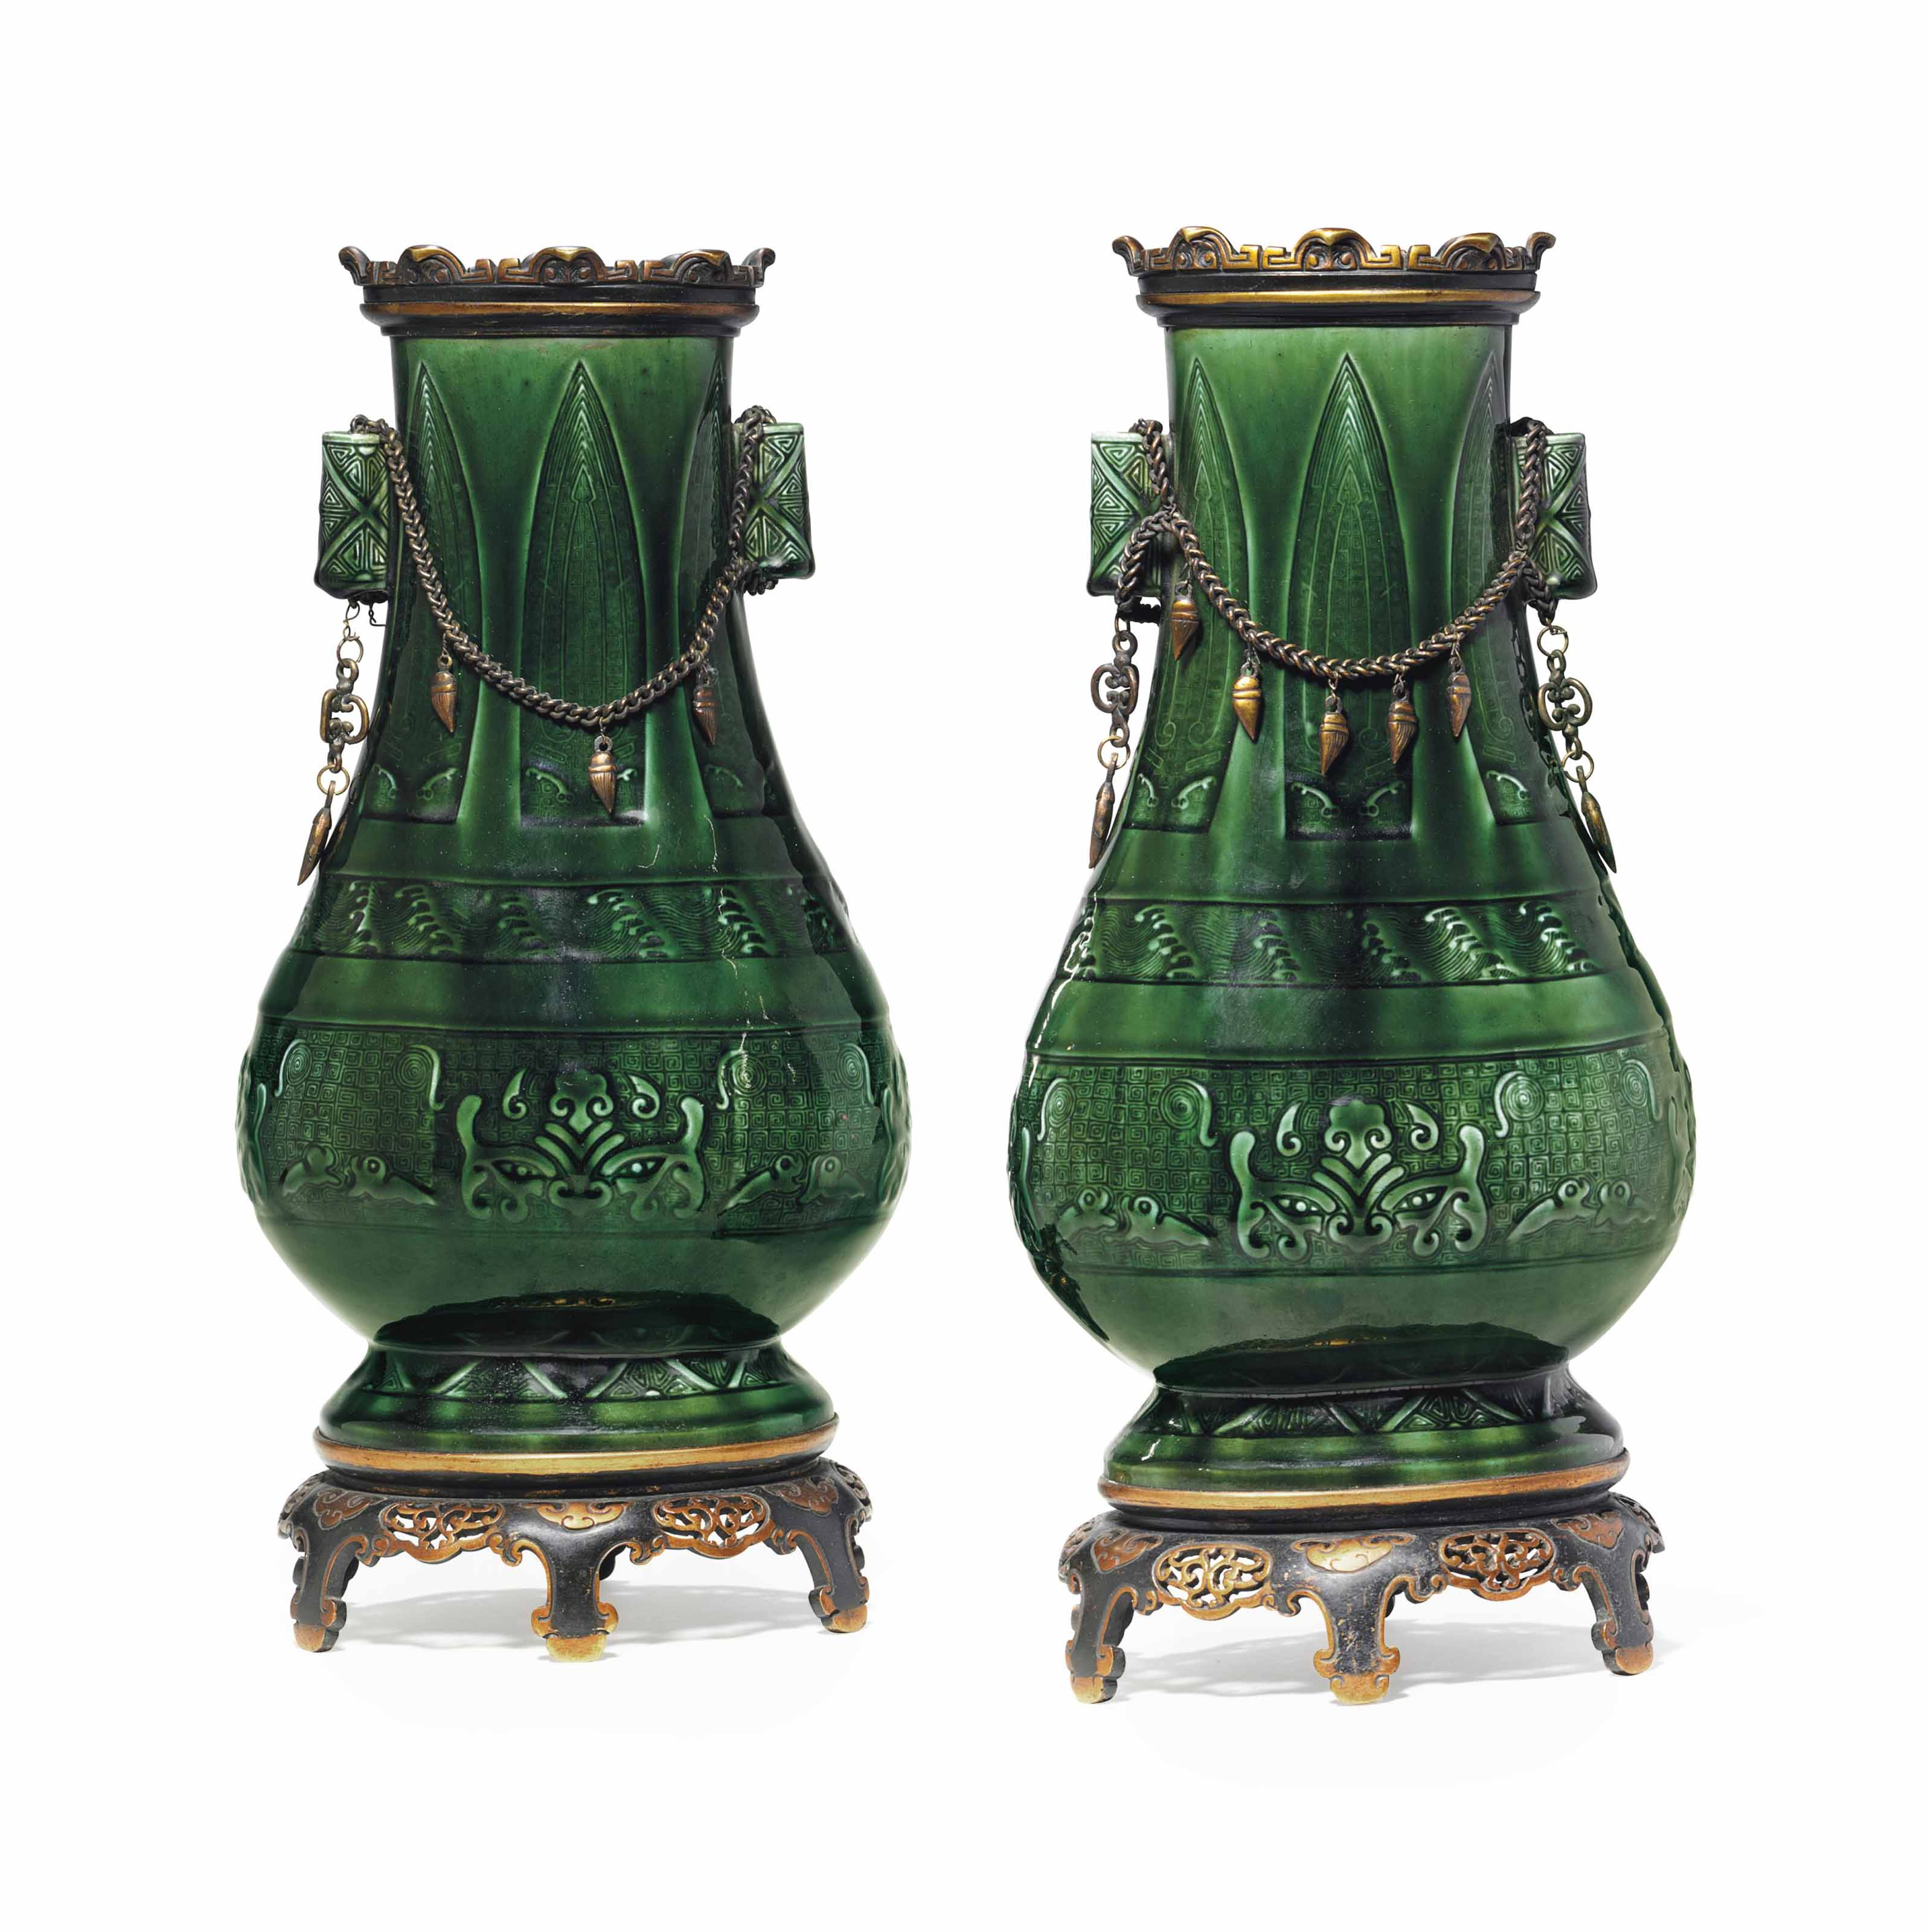 A PAIR OF GILT-METAL MOUNTED THEODORE DECK GREEN-GROUND VASES ON STANDS